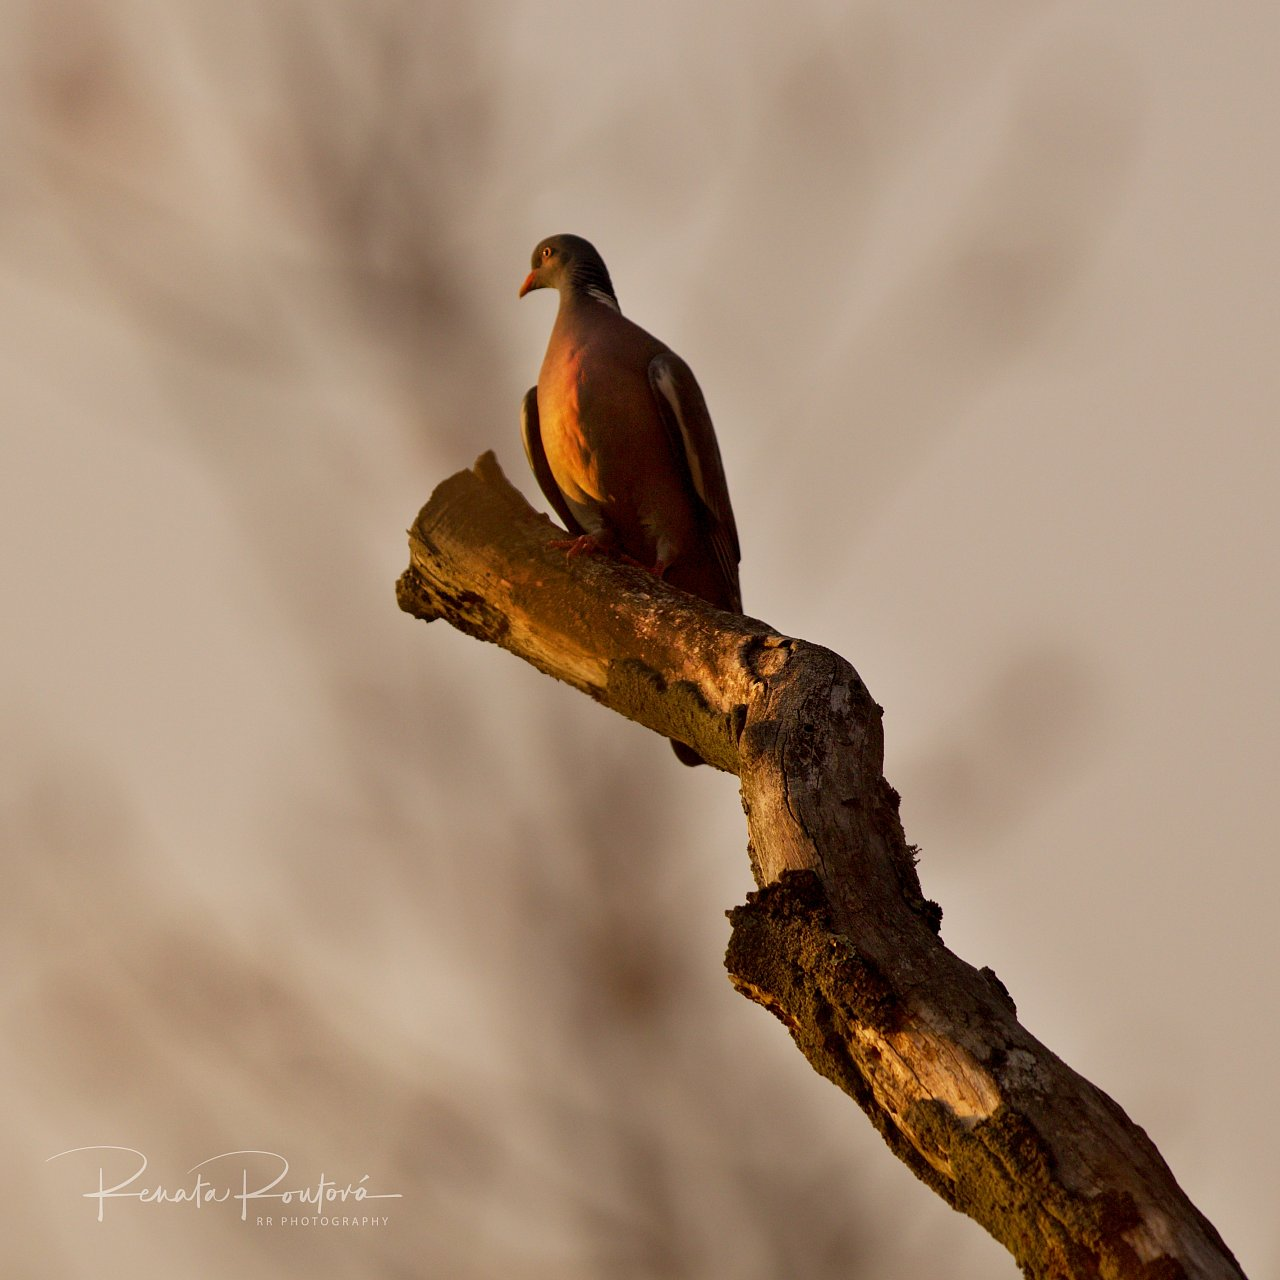 a wood pigeon perching on a dry branch, i had never seen before such a golden one